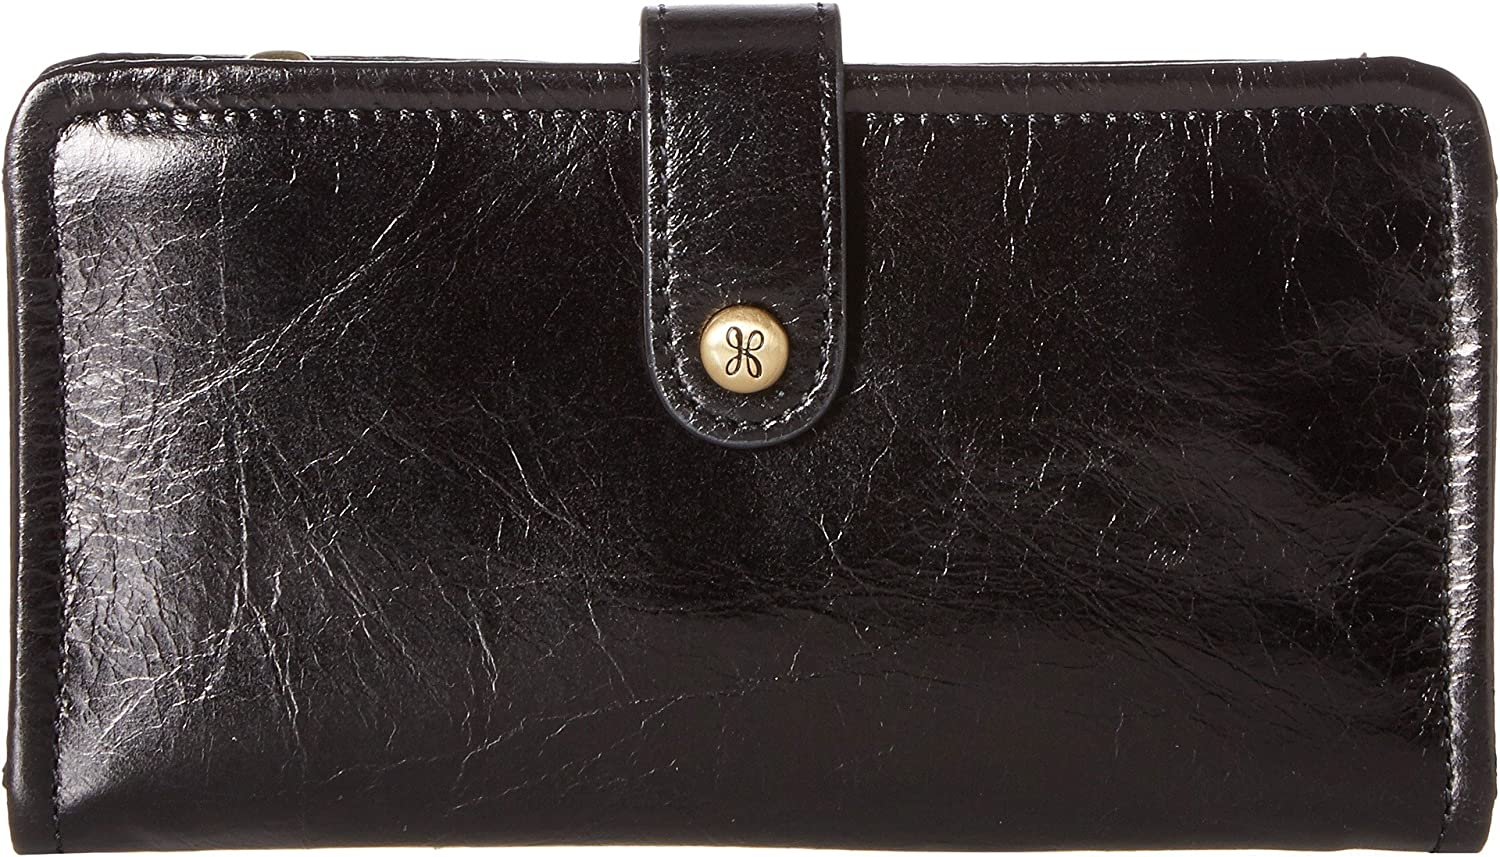 Hobo Women s Torch Vintage Leather Folio Wallet (Black) at Amazon Women s  Clothing store  499d3006e423a